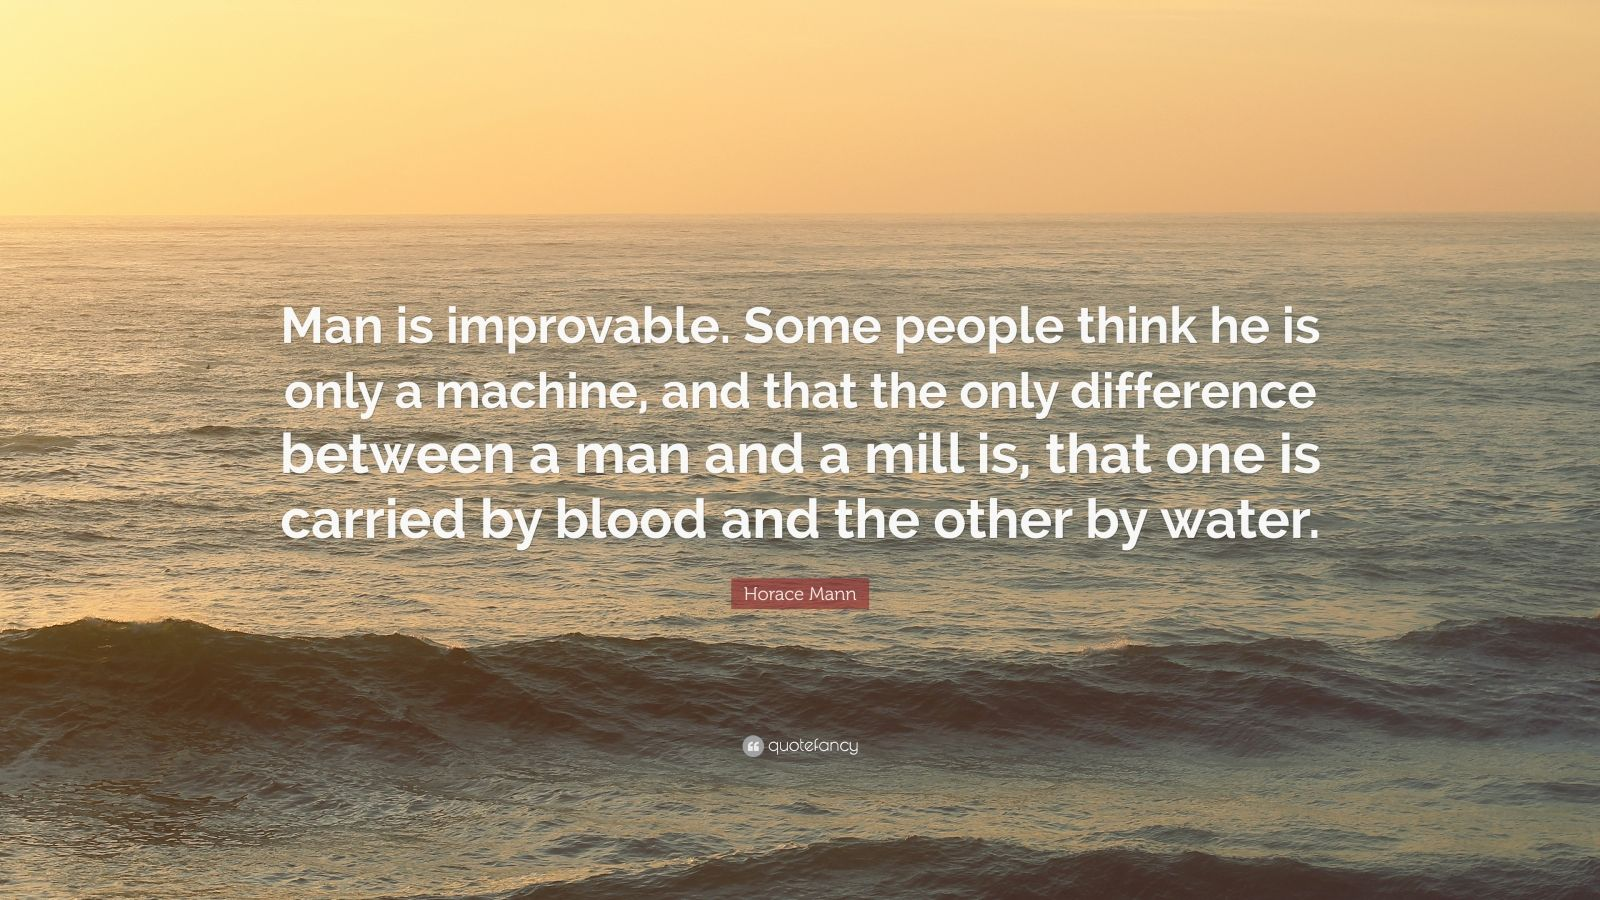 """Horace Mann Quote: """"Man is improvable. Some people think he is only a machine, and that the only difference between a man and a mill is, that one is carried by blood and the other by water."""""""